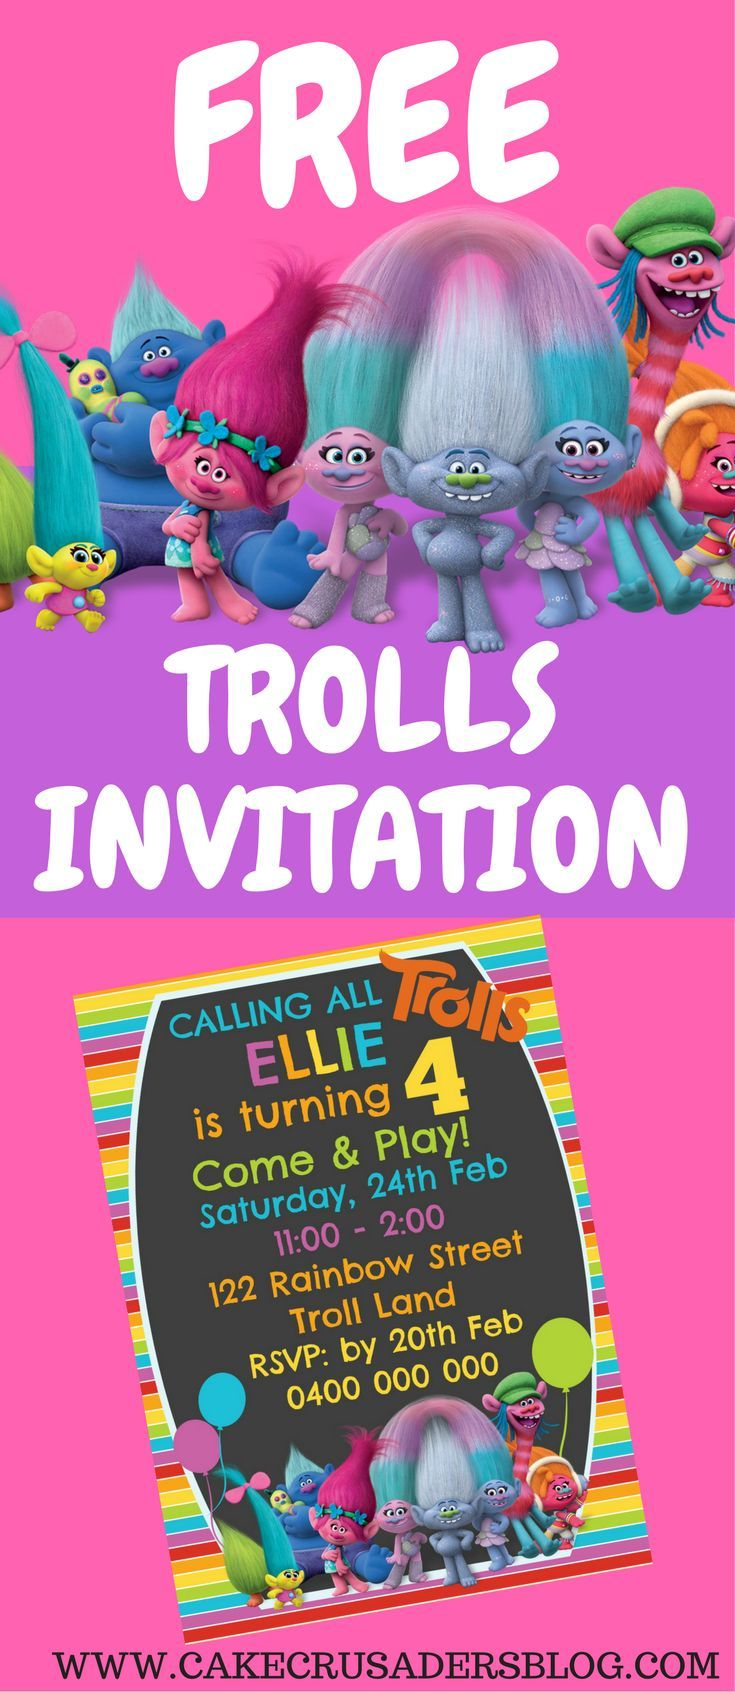 DIY Free Trolls Invitation Great Party Printable Templates That Can Be Homemade Fourth Birthday